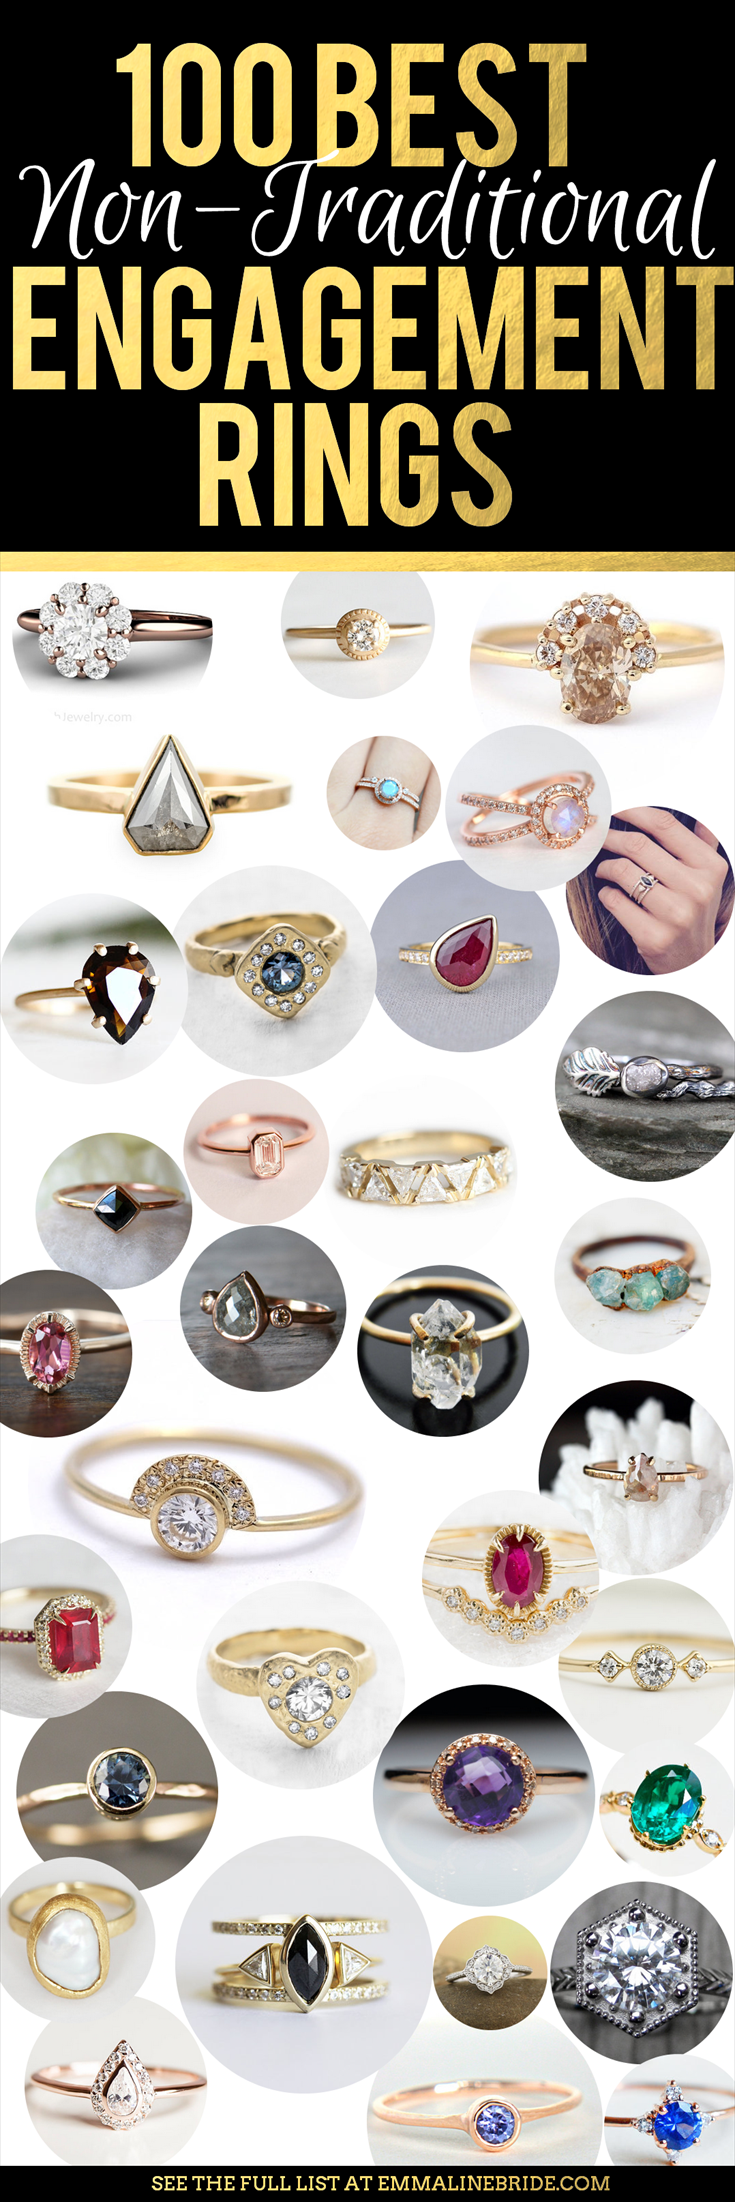 100 Best Non-Traditional Engagement Rings | via http://emmalinebride.com/engagement/non-traditional-engagement-rings